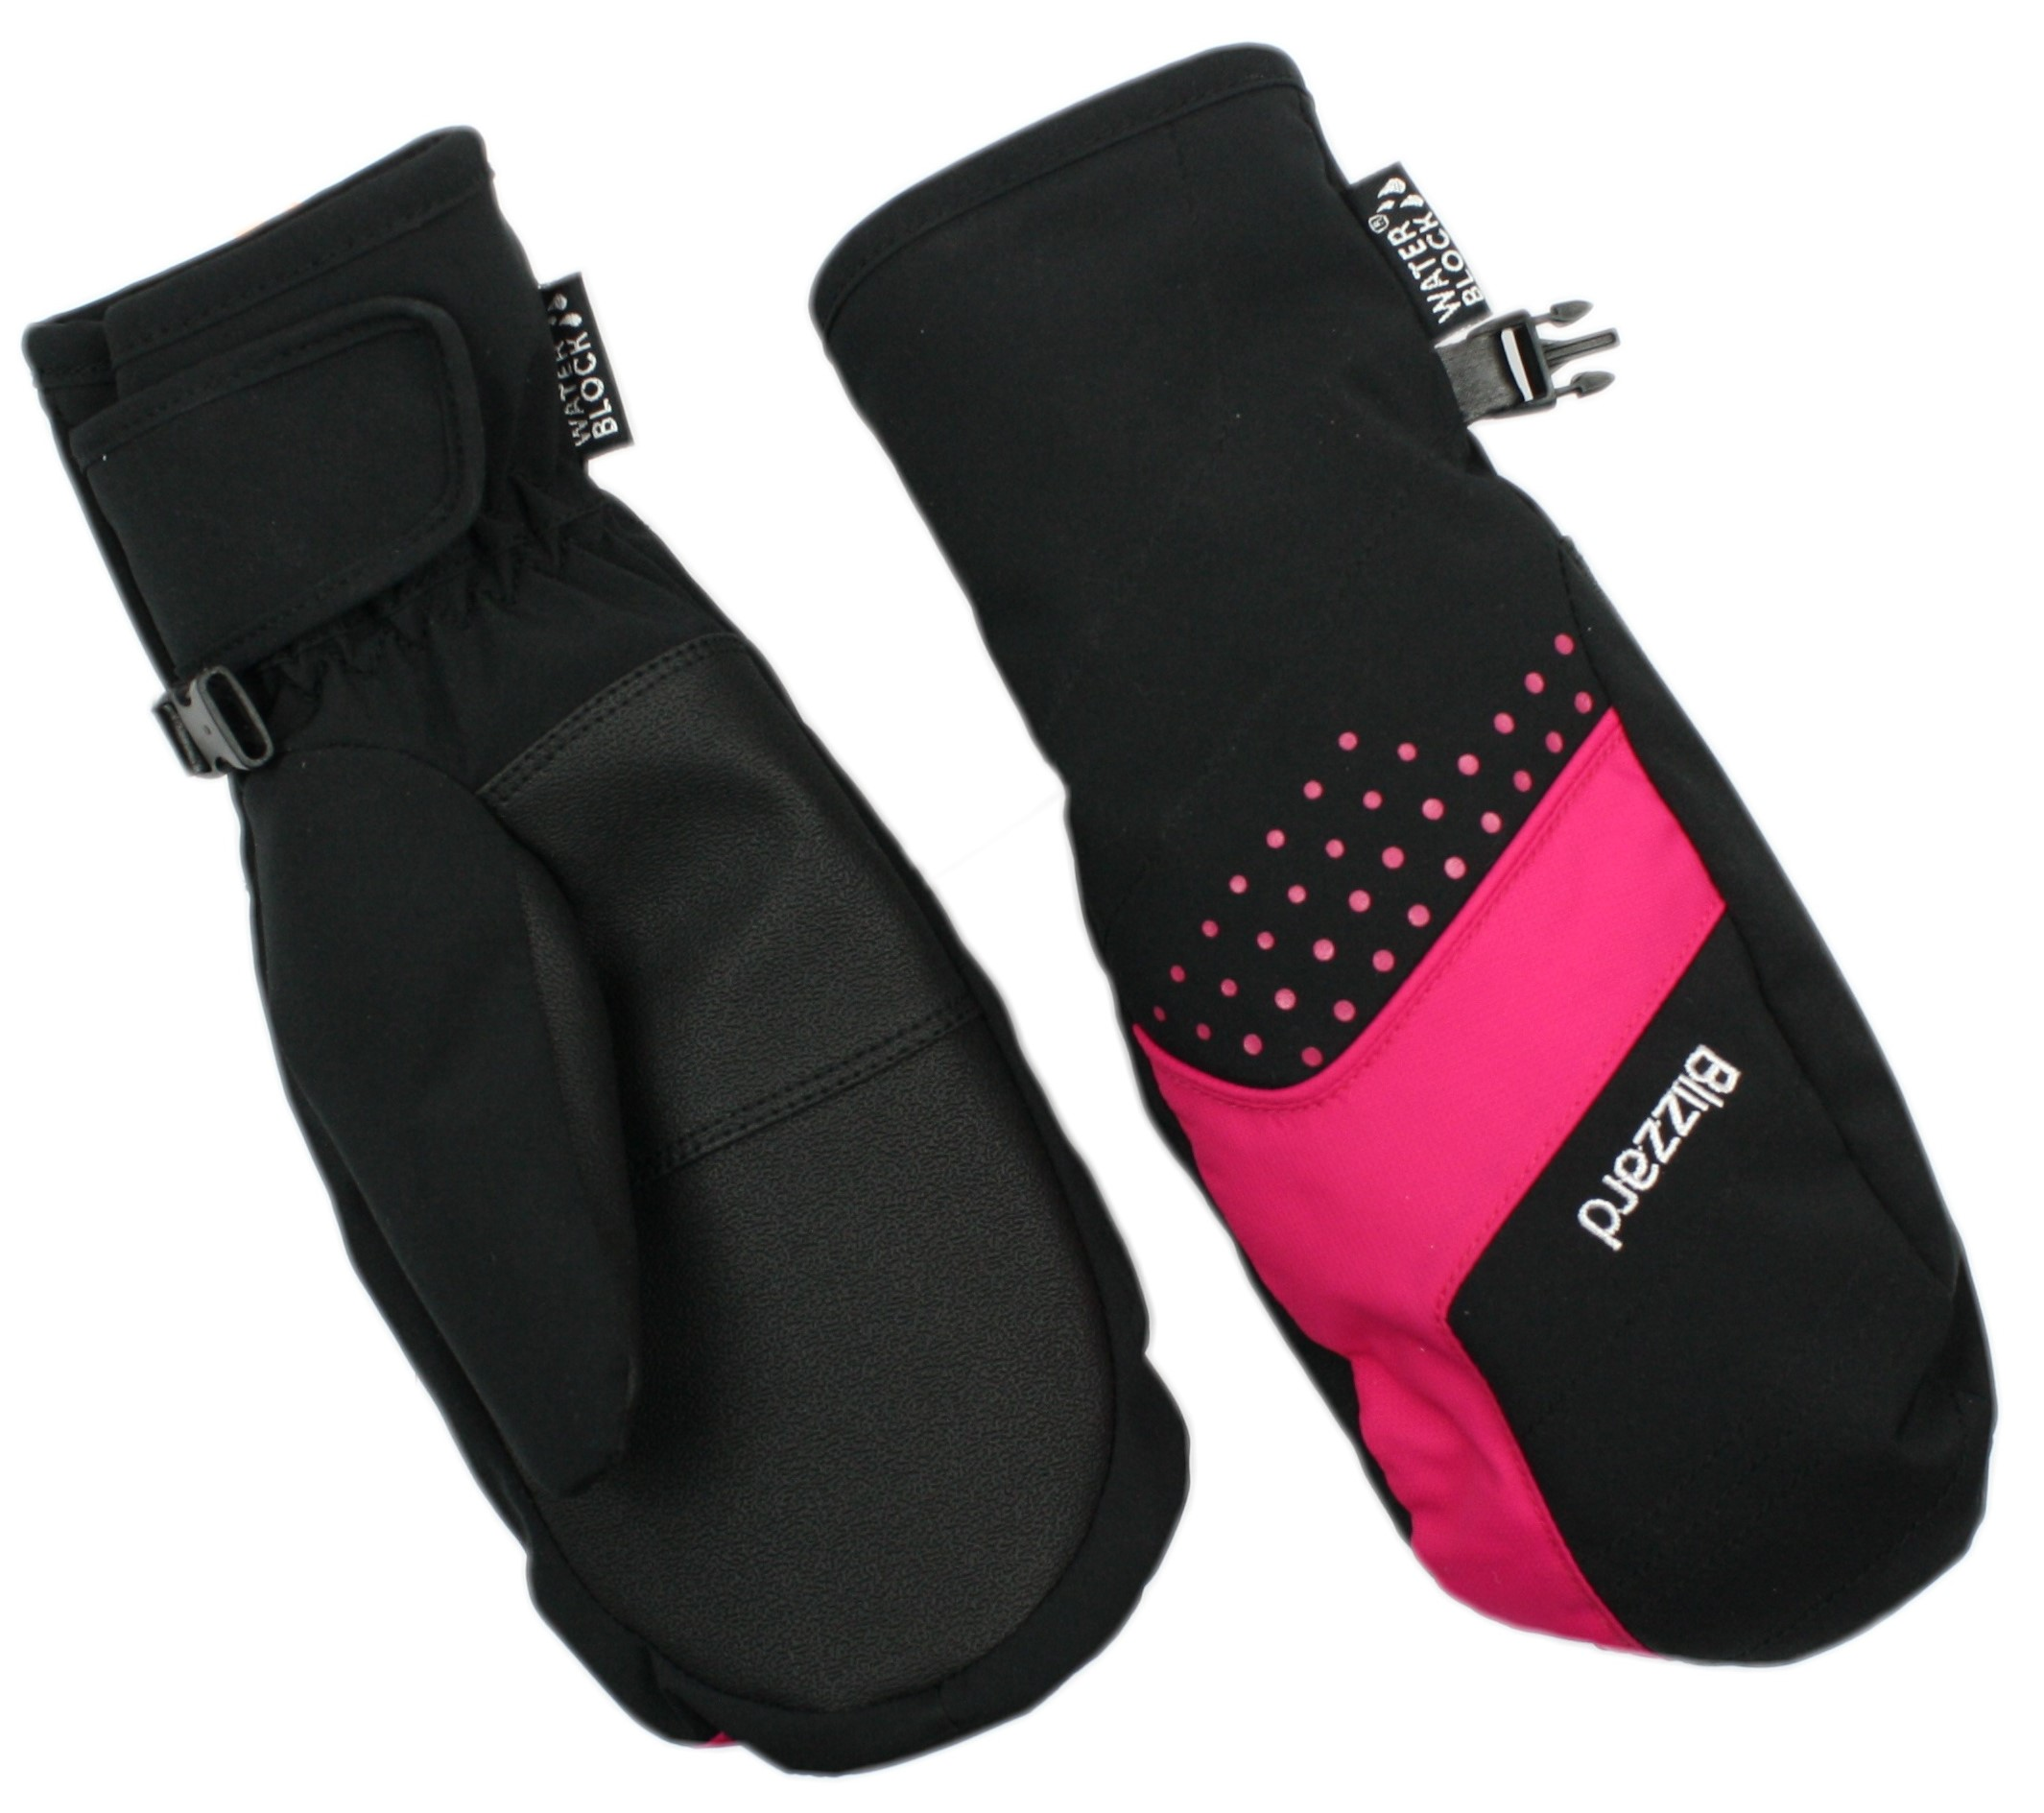 LYŽAŘSKÉ RUKAVICE BLIZZARD MITTEN JUNIOR SKI GLOVES, BLACK/PINK